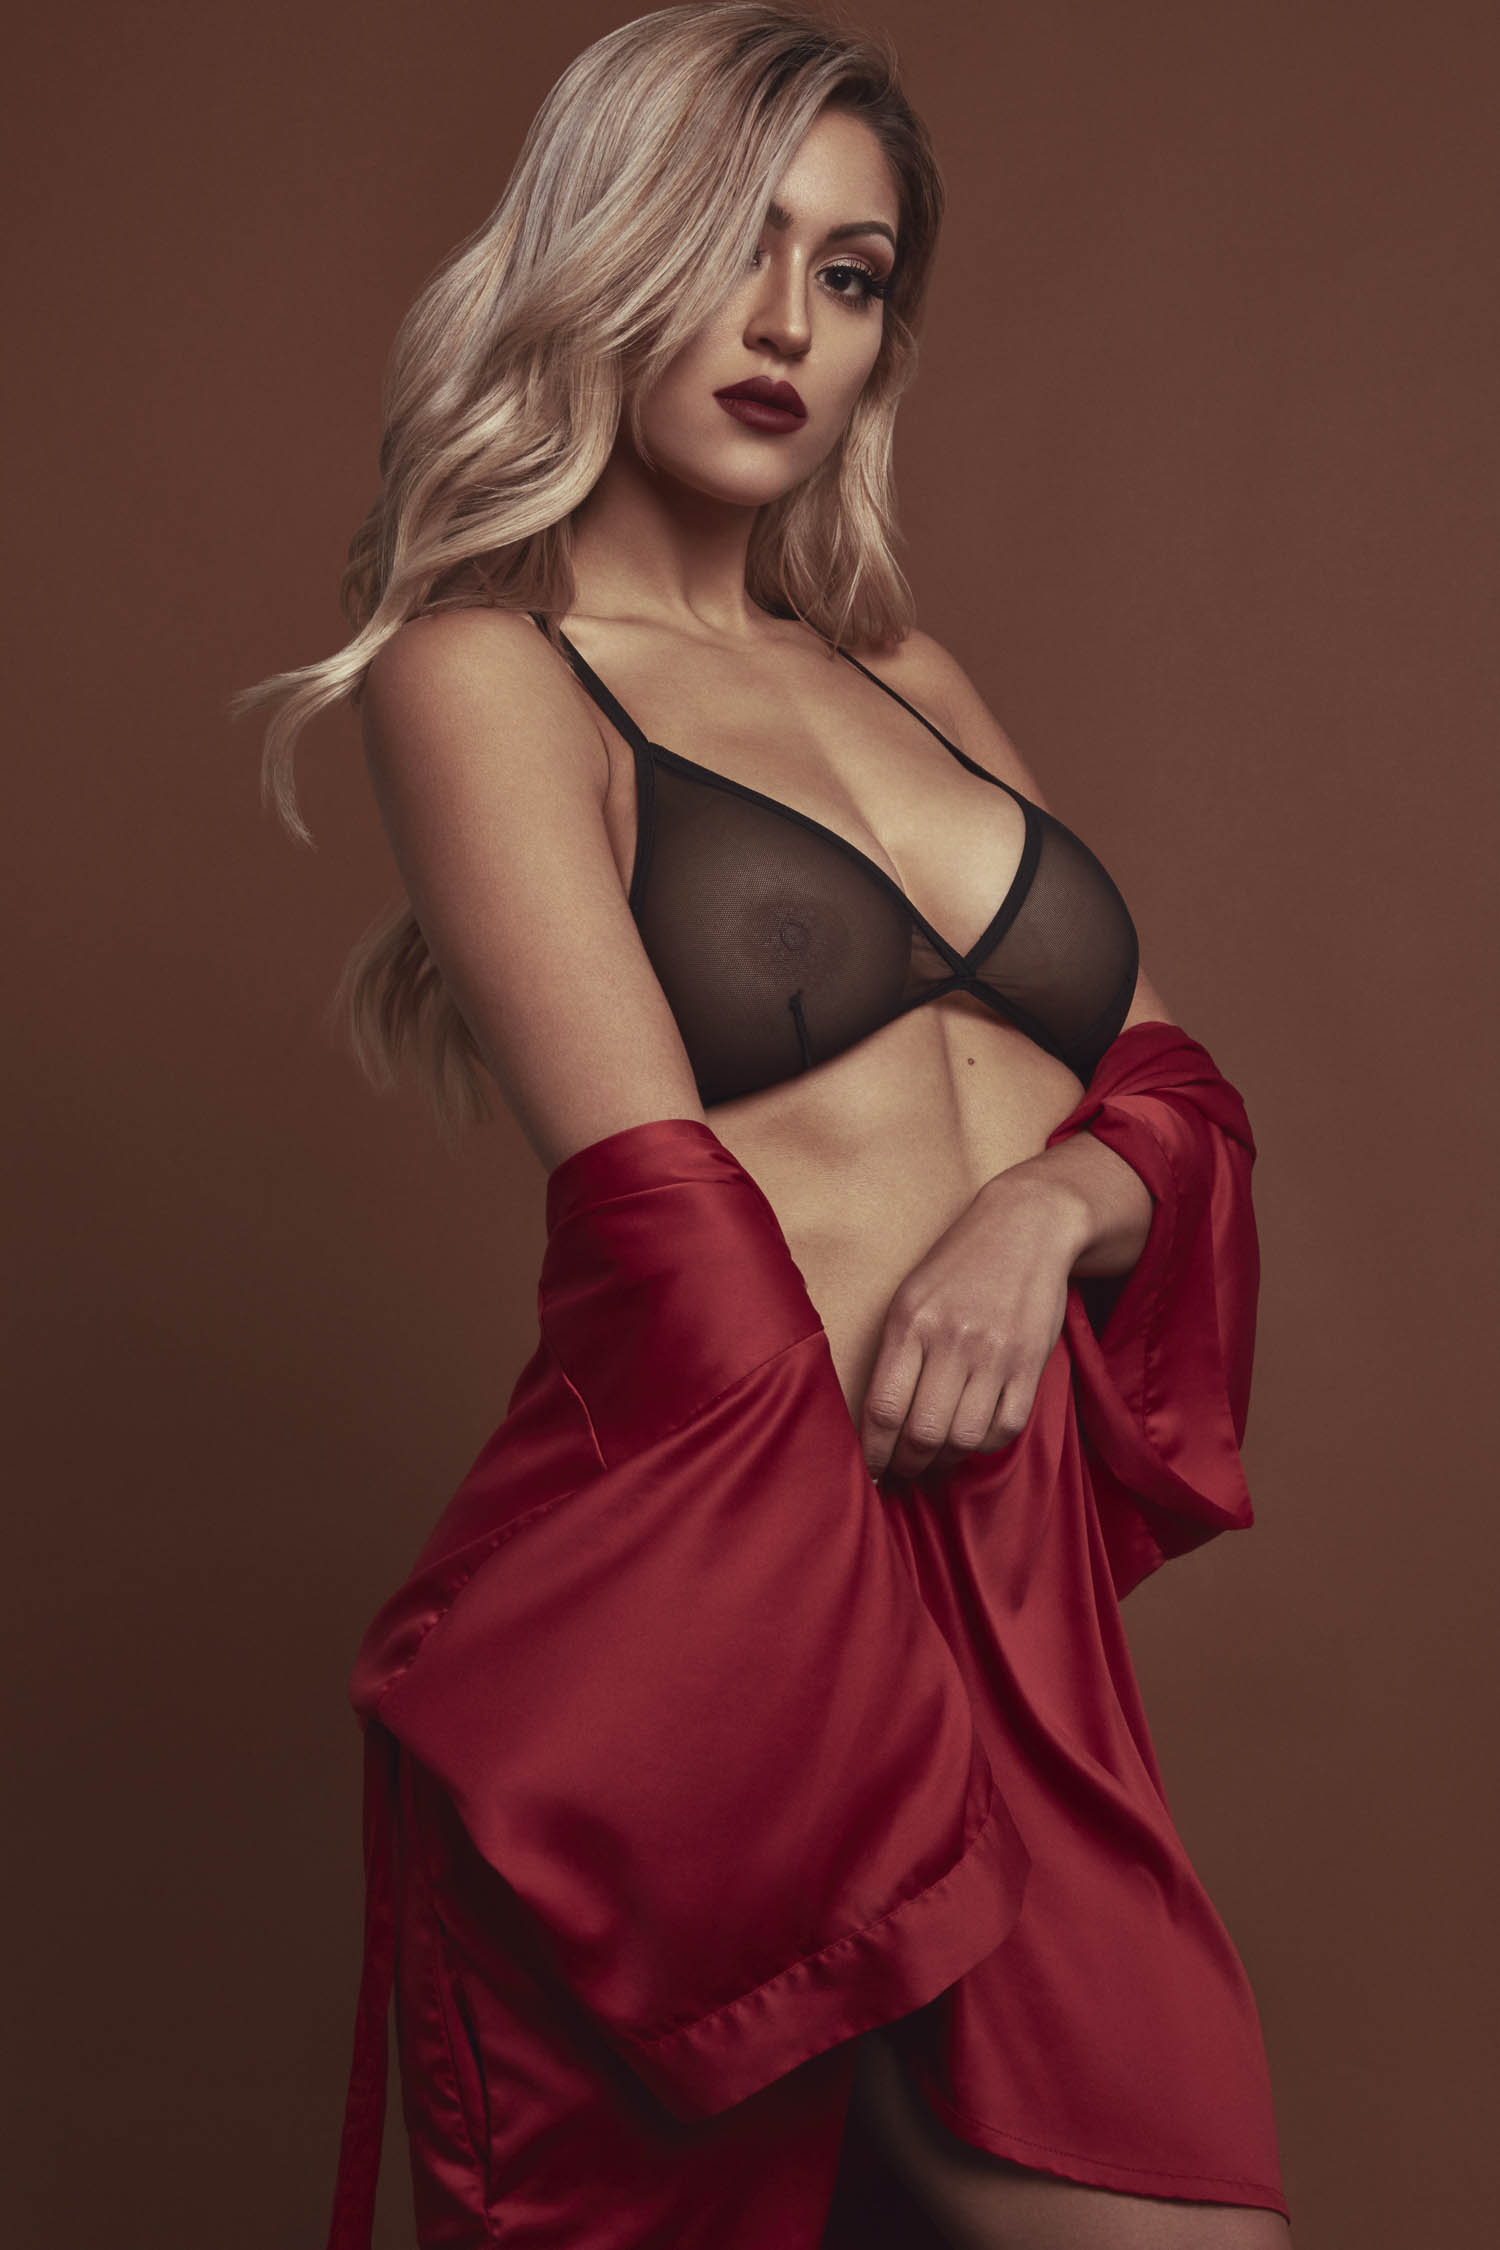 Blonde woman in a black bra and red satin robe